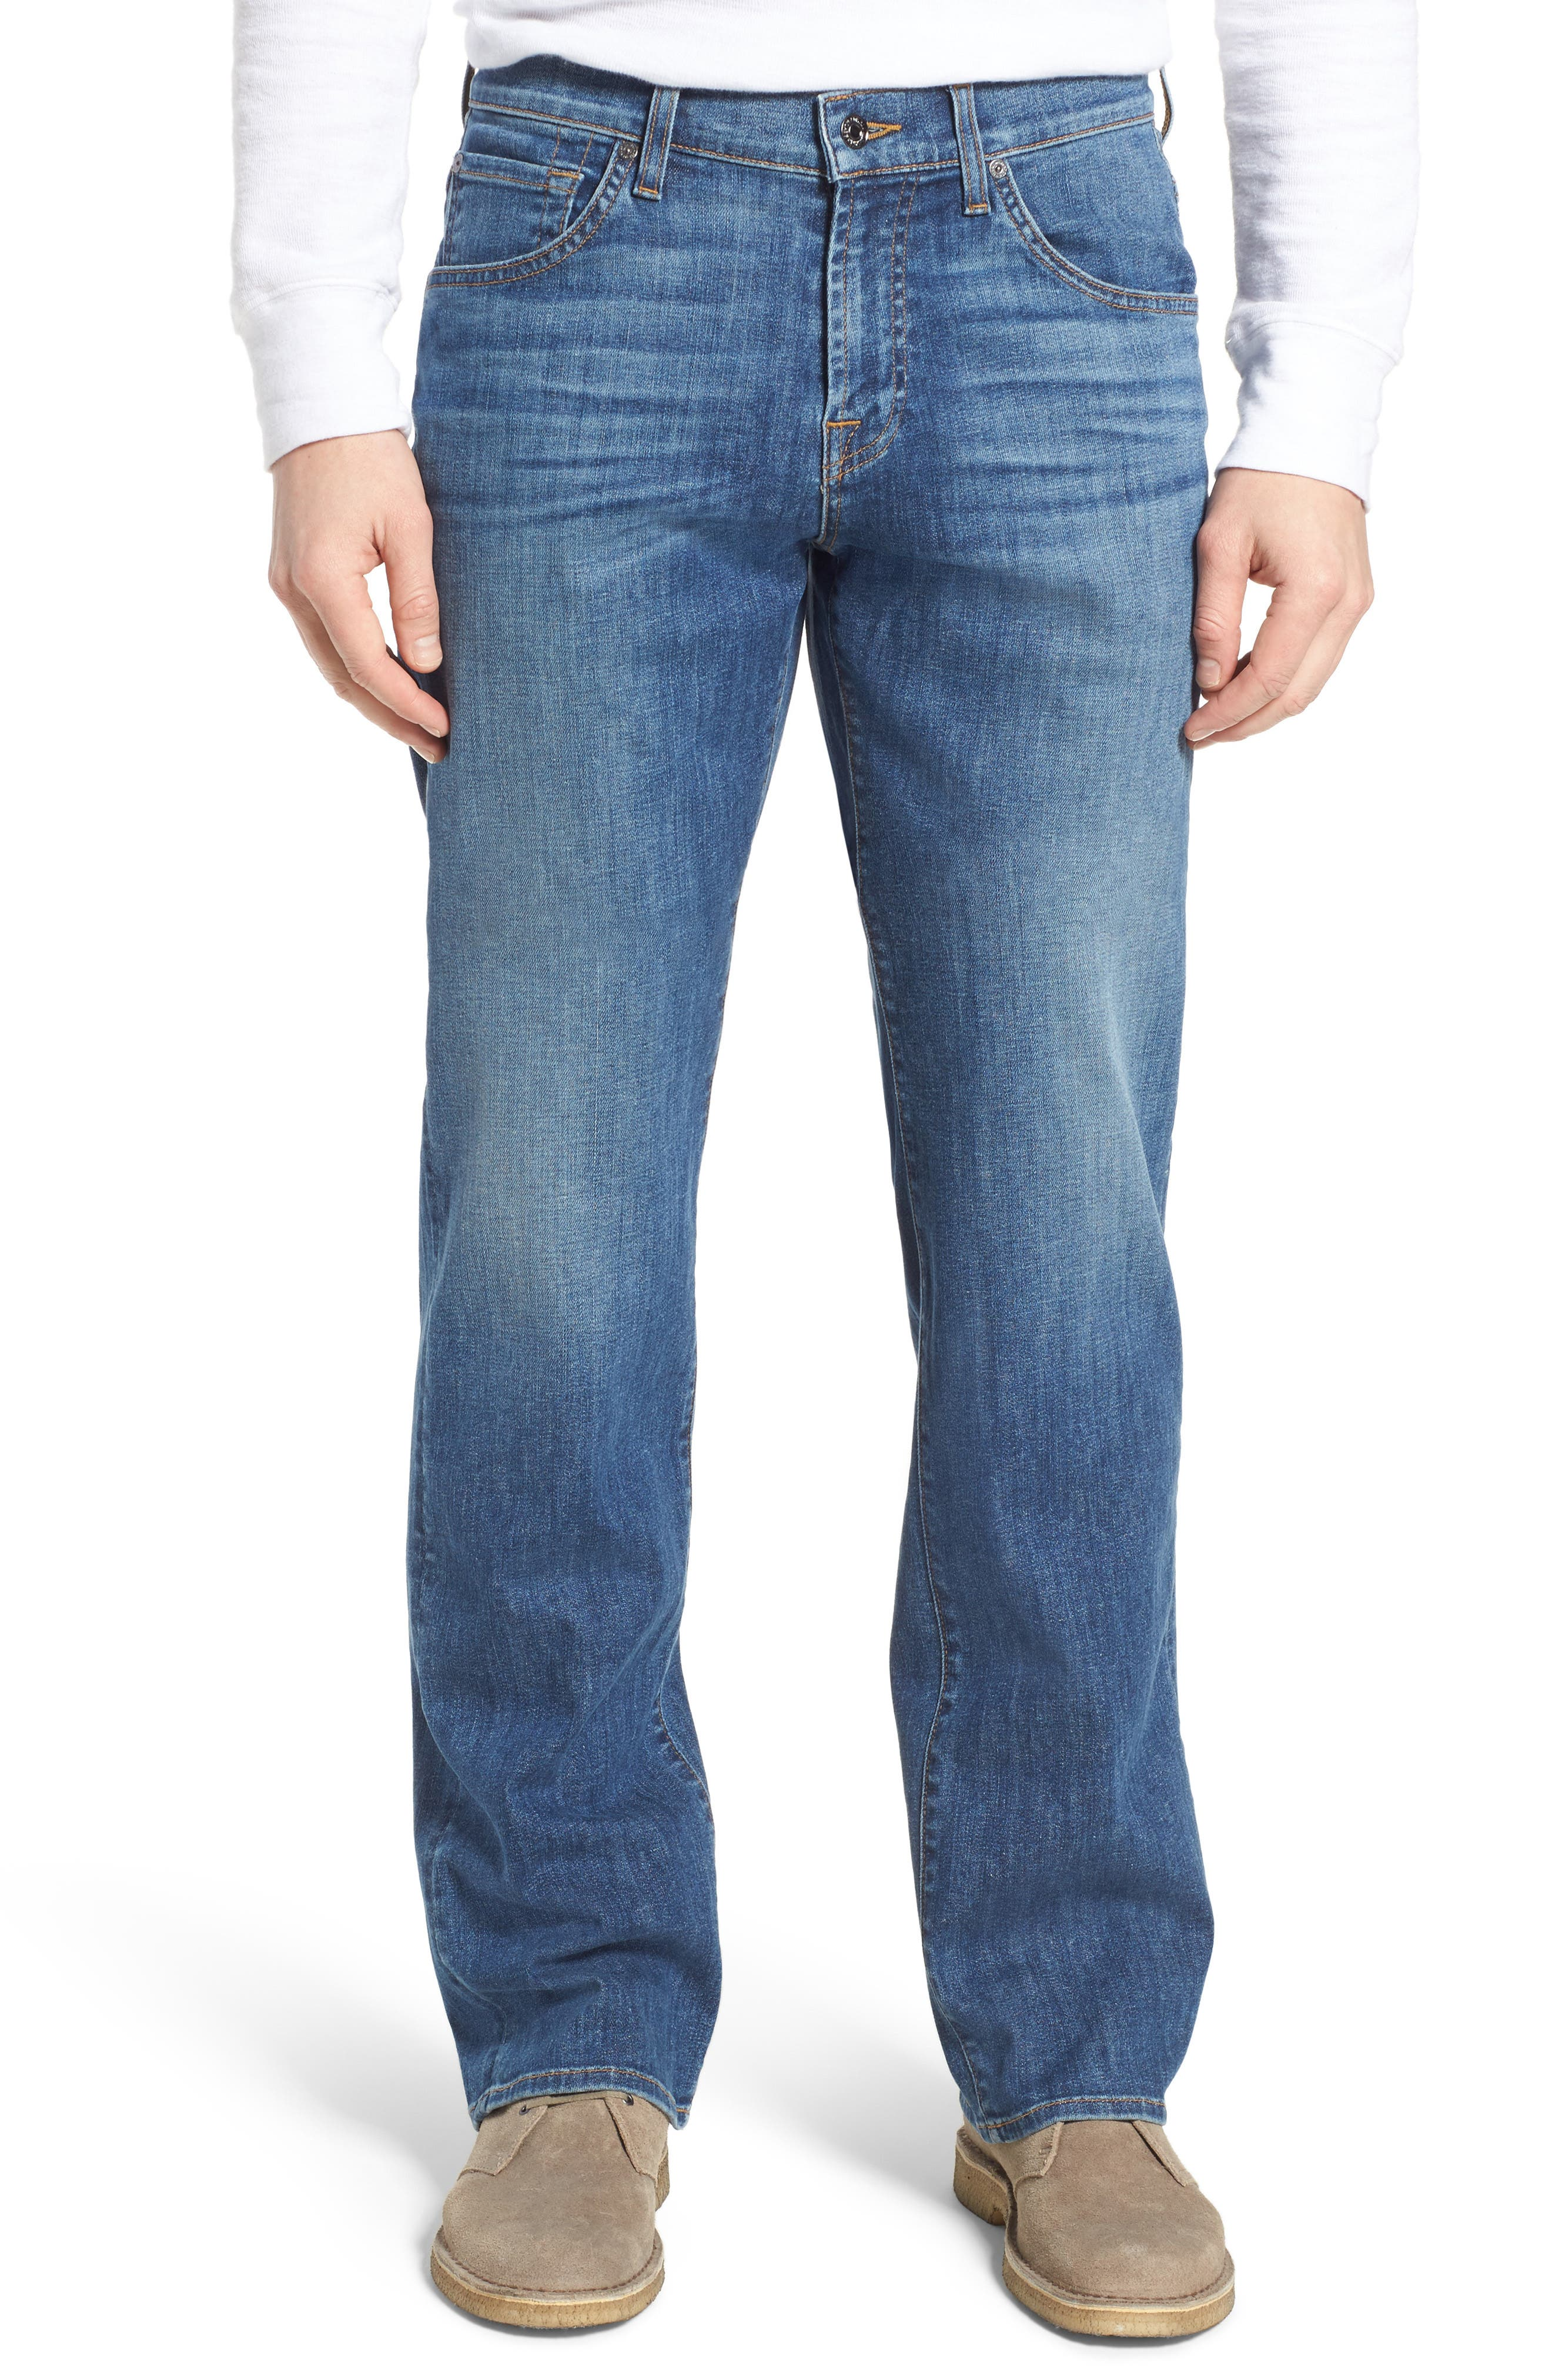 Austyn Relaxed Fit Jeans,                         Main,                         color, East Sussex